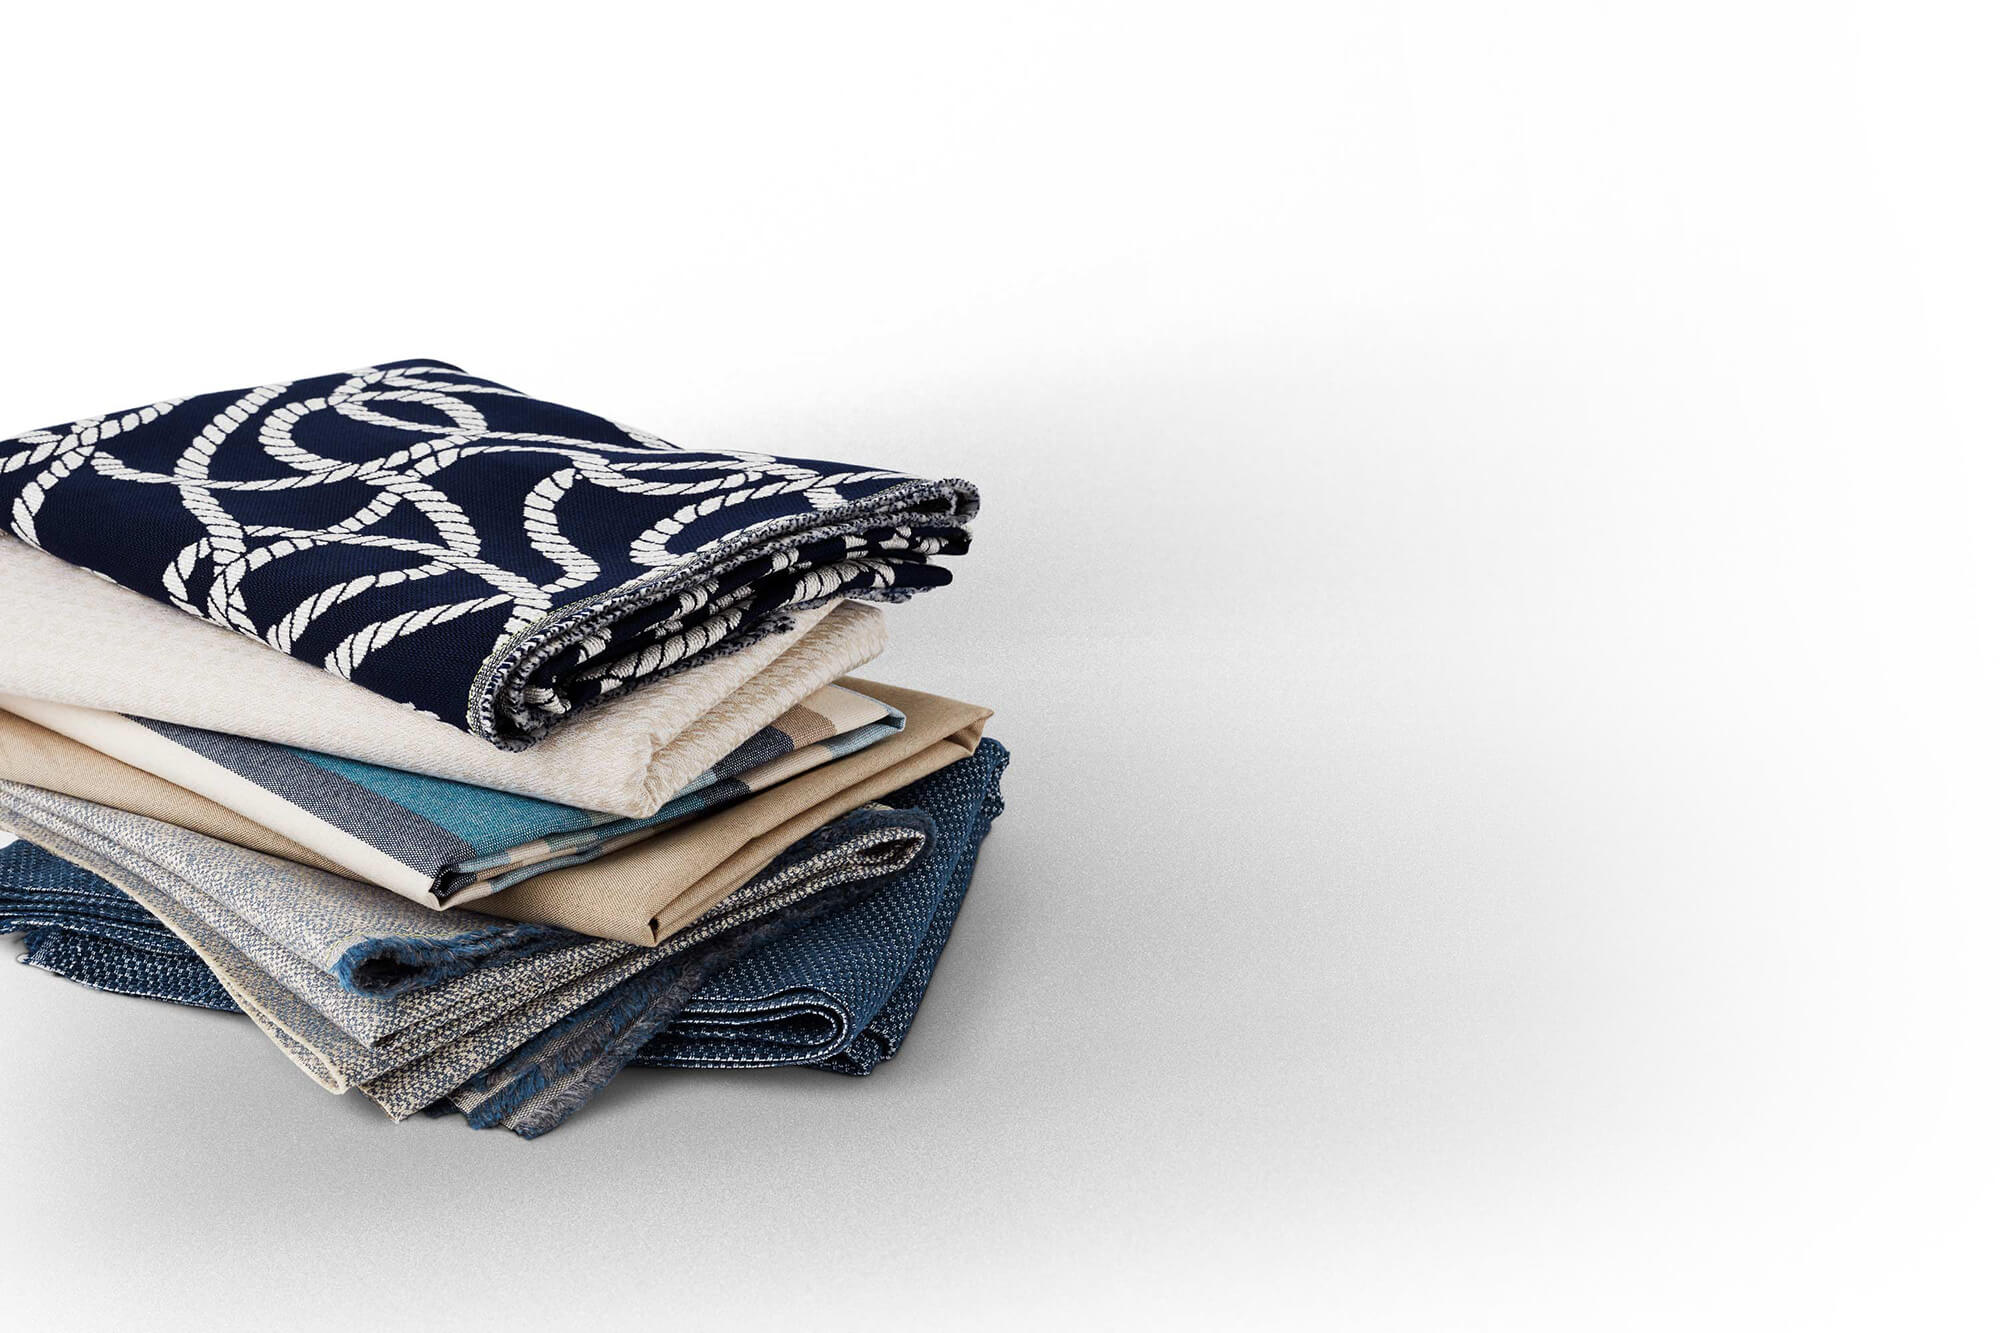 Fabrics from the Sunbrella Fusion collection